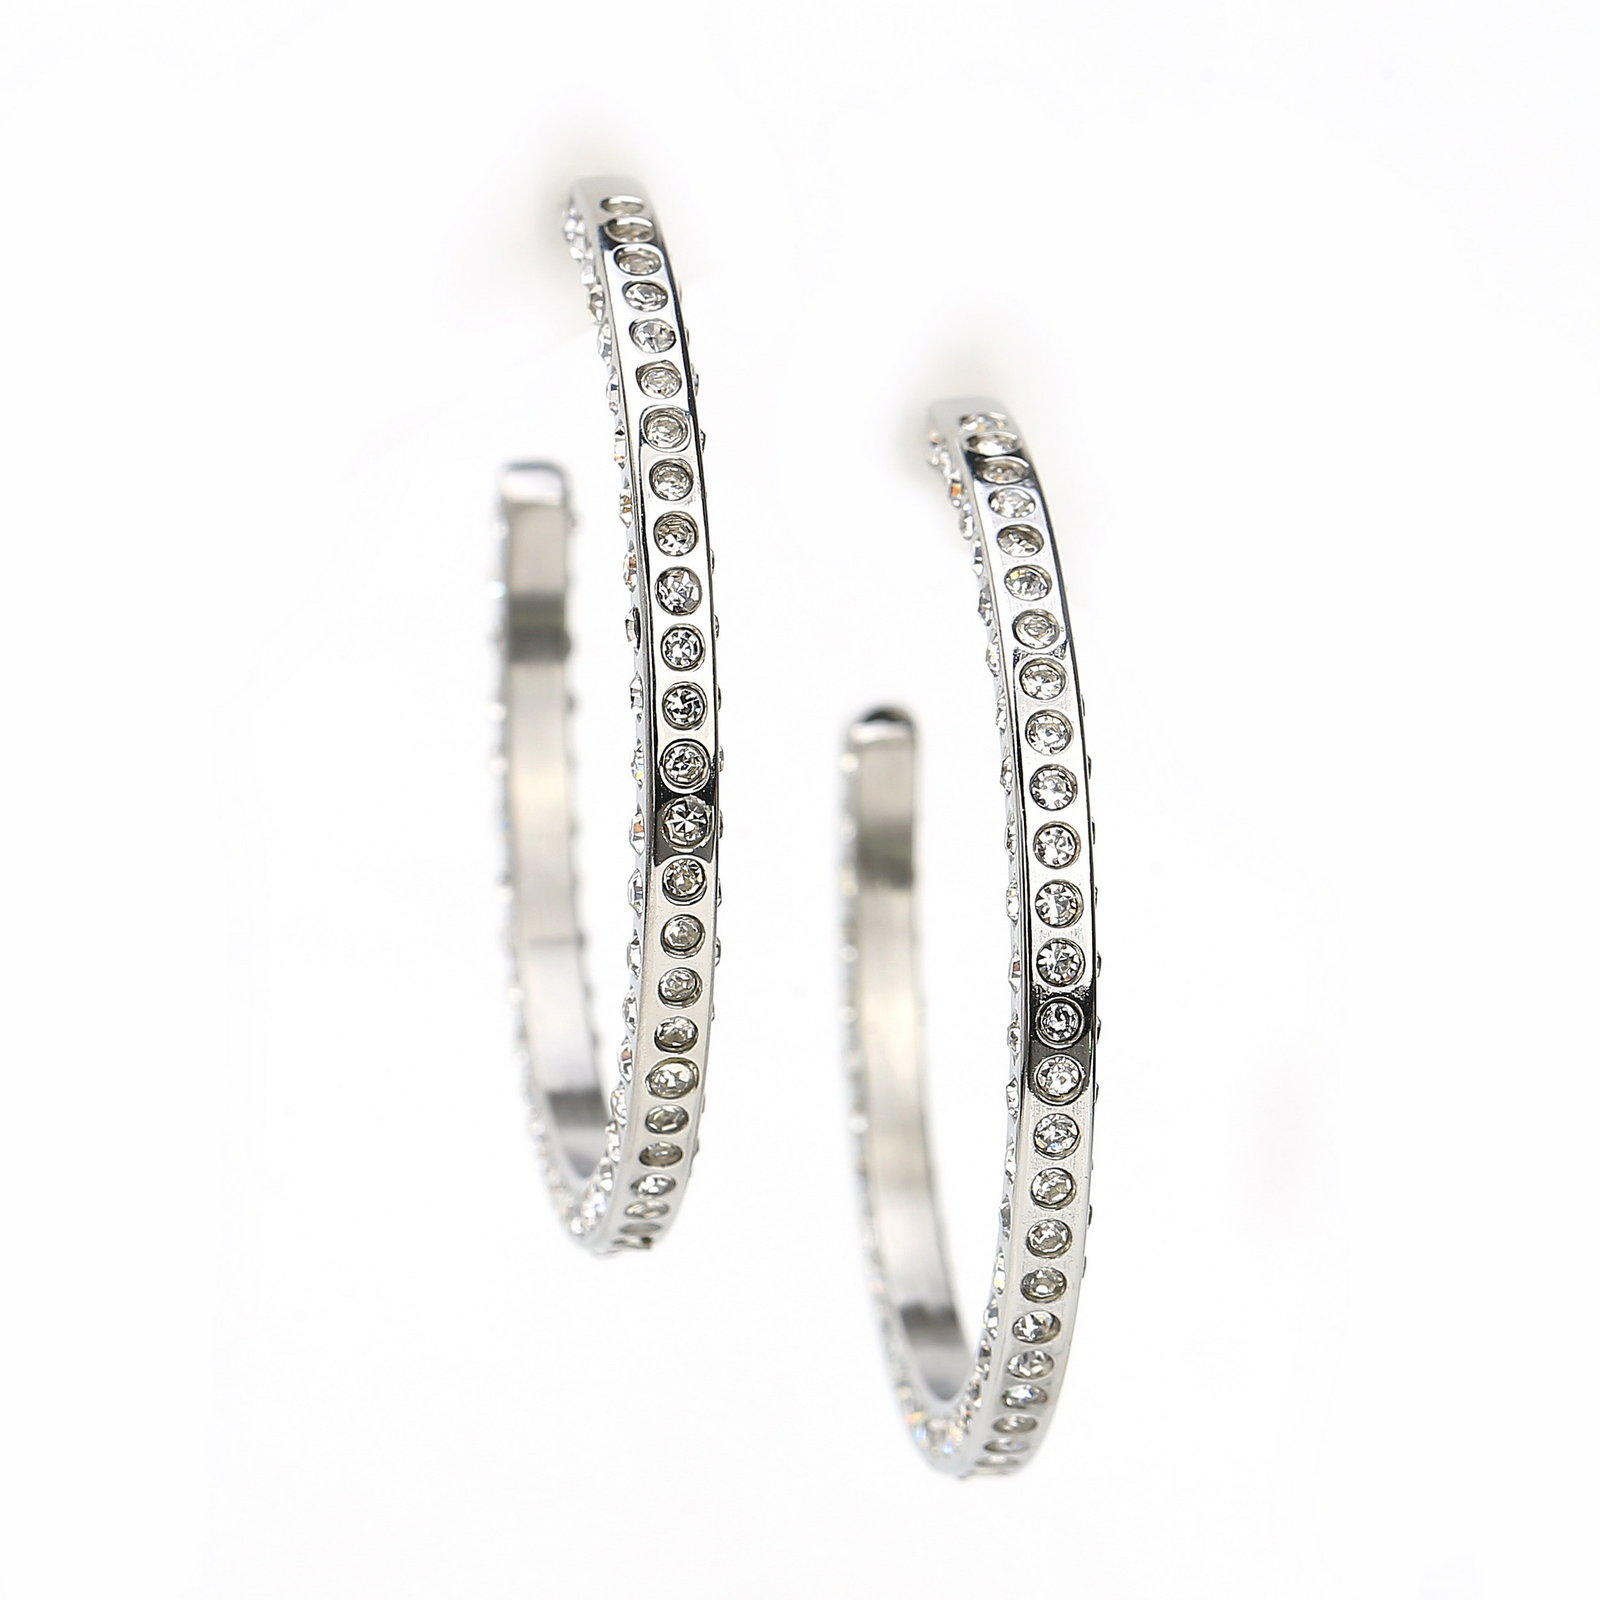 UNITED ELEGANCE Silver Tone Hoop Earrings With Dazzling Swarovski Style Crystals image 3